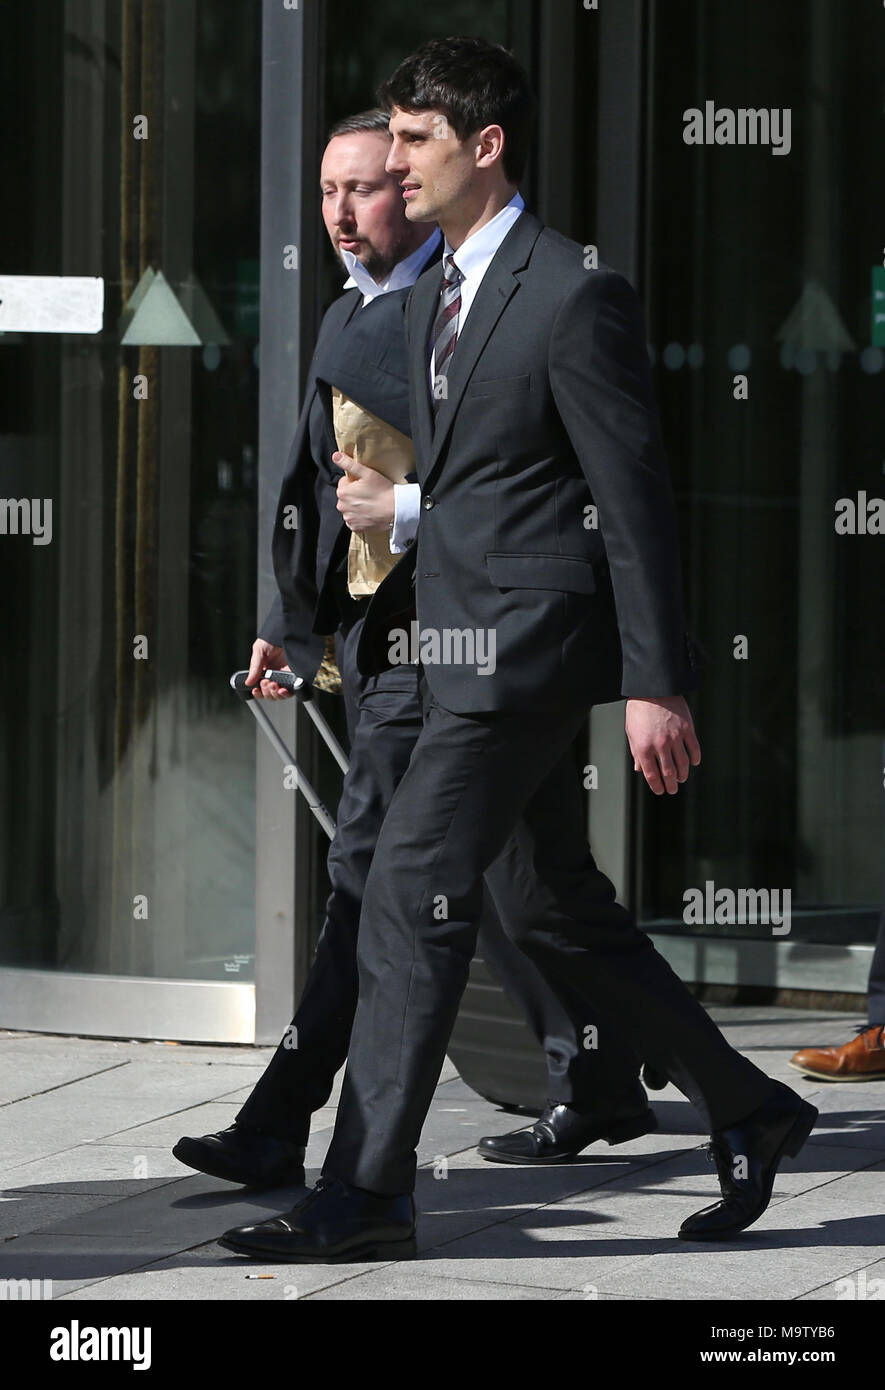 Blane McIlroy (right) leaving Belfast Crown Court after being found not guilty of exposure. - Stock Image